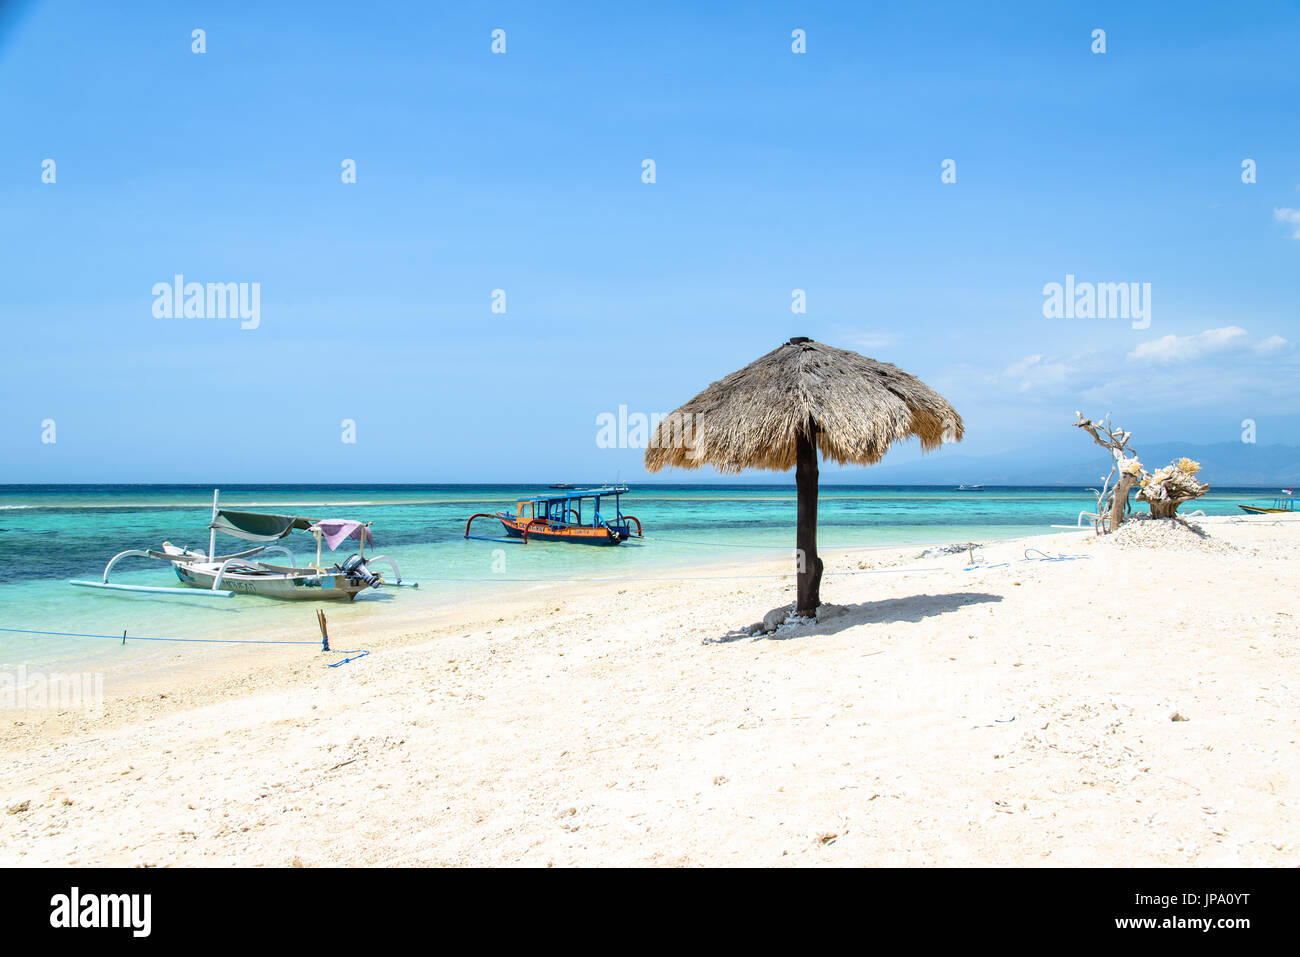 Beach of Gili Meno with crystal clear turquoise water, Lombok, Indonesia - Stock Image